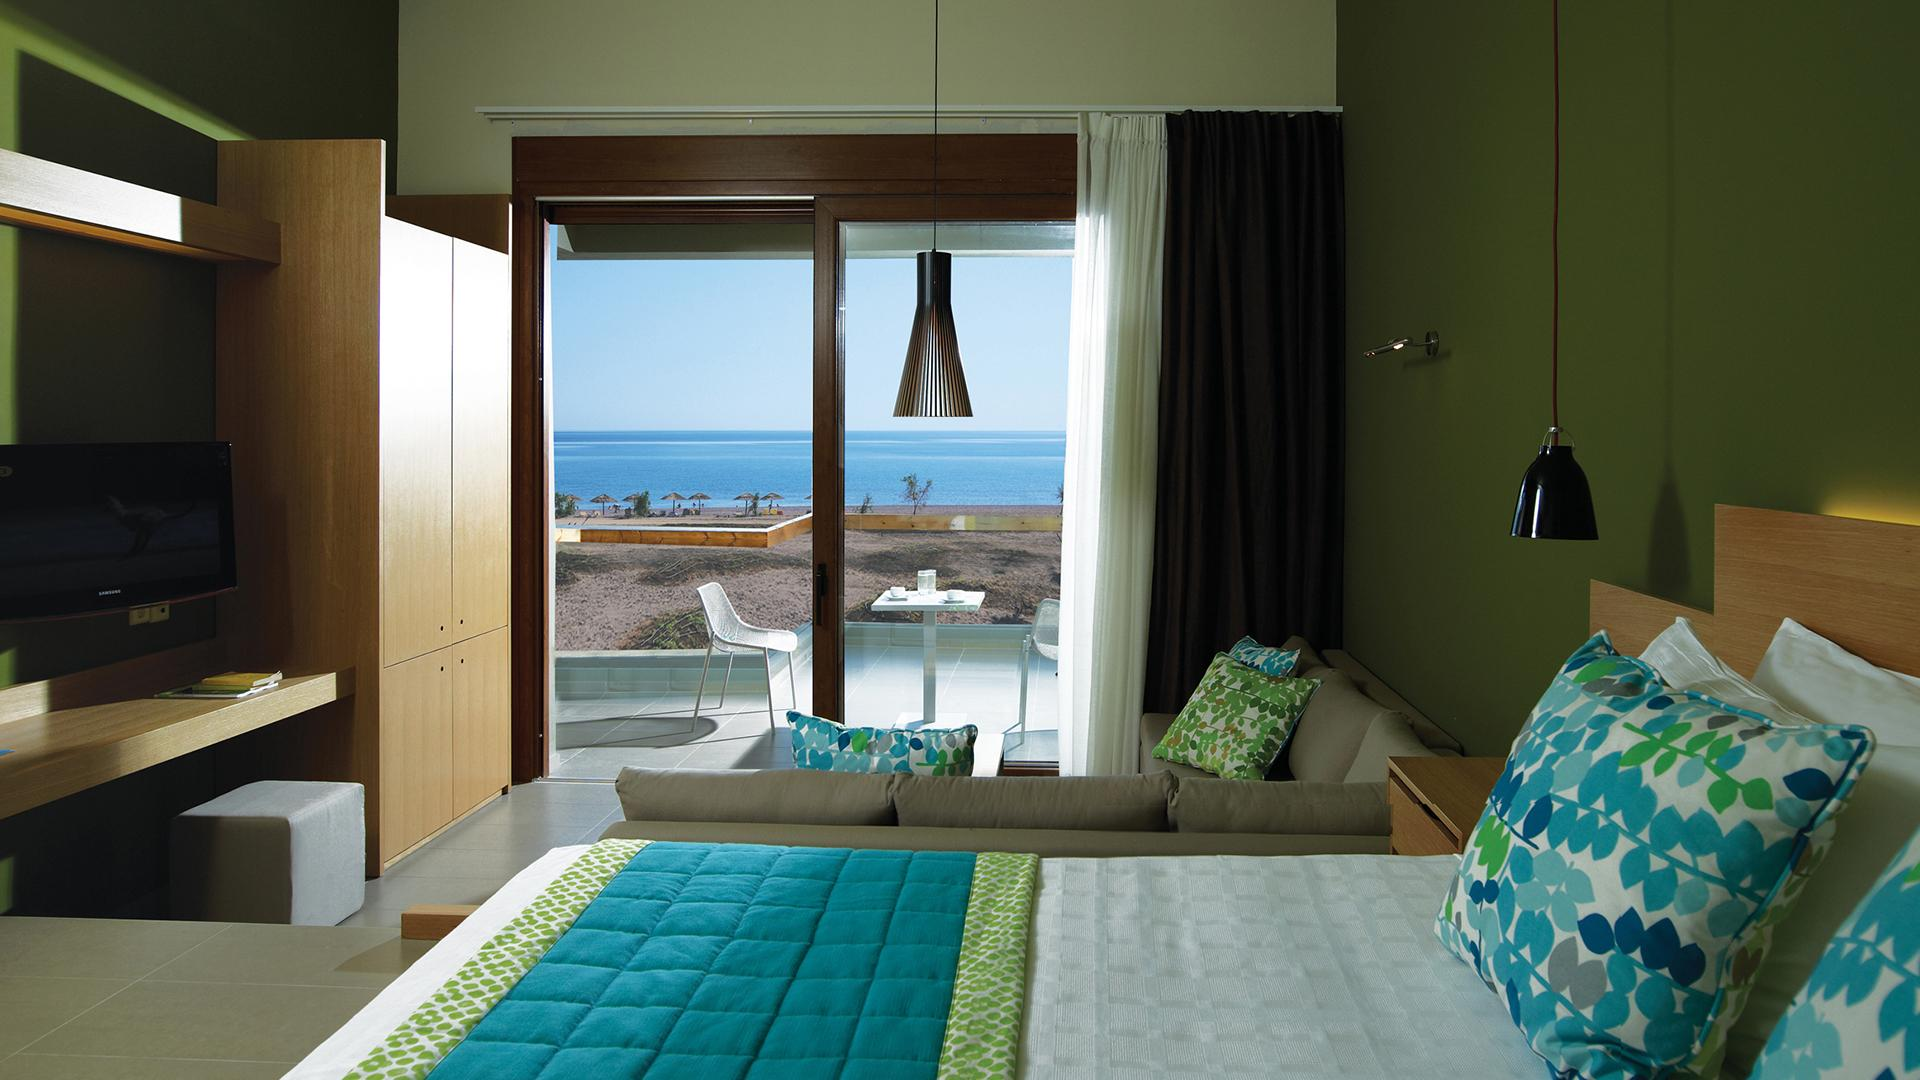 Superior Sea View Room image 1 at Thalatta Seaside Hotel by , , null